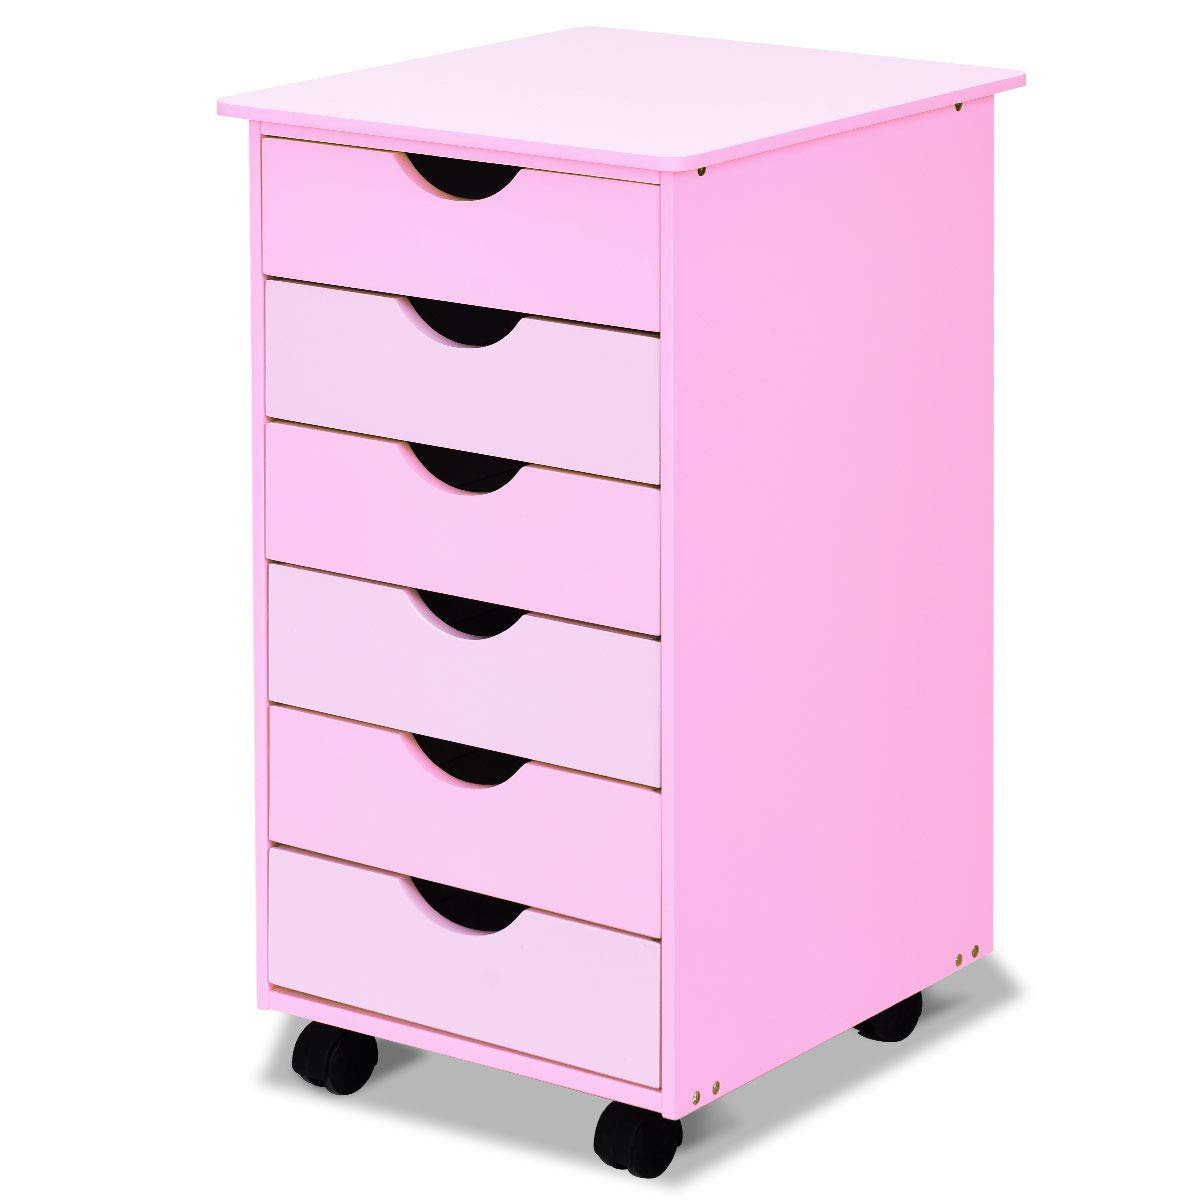 Vertical File Cabinets Online Shopping For Clothing